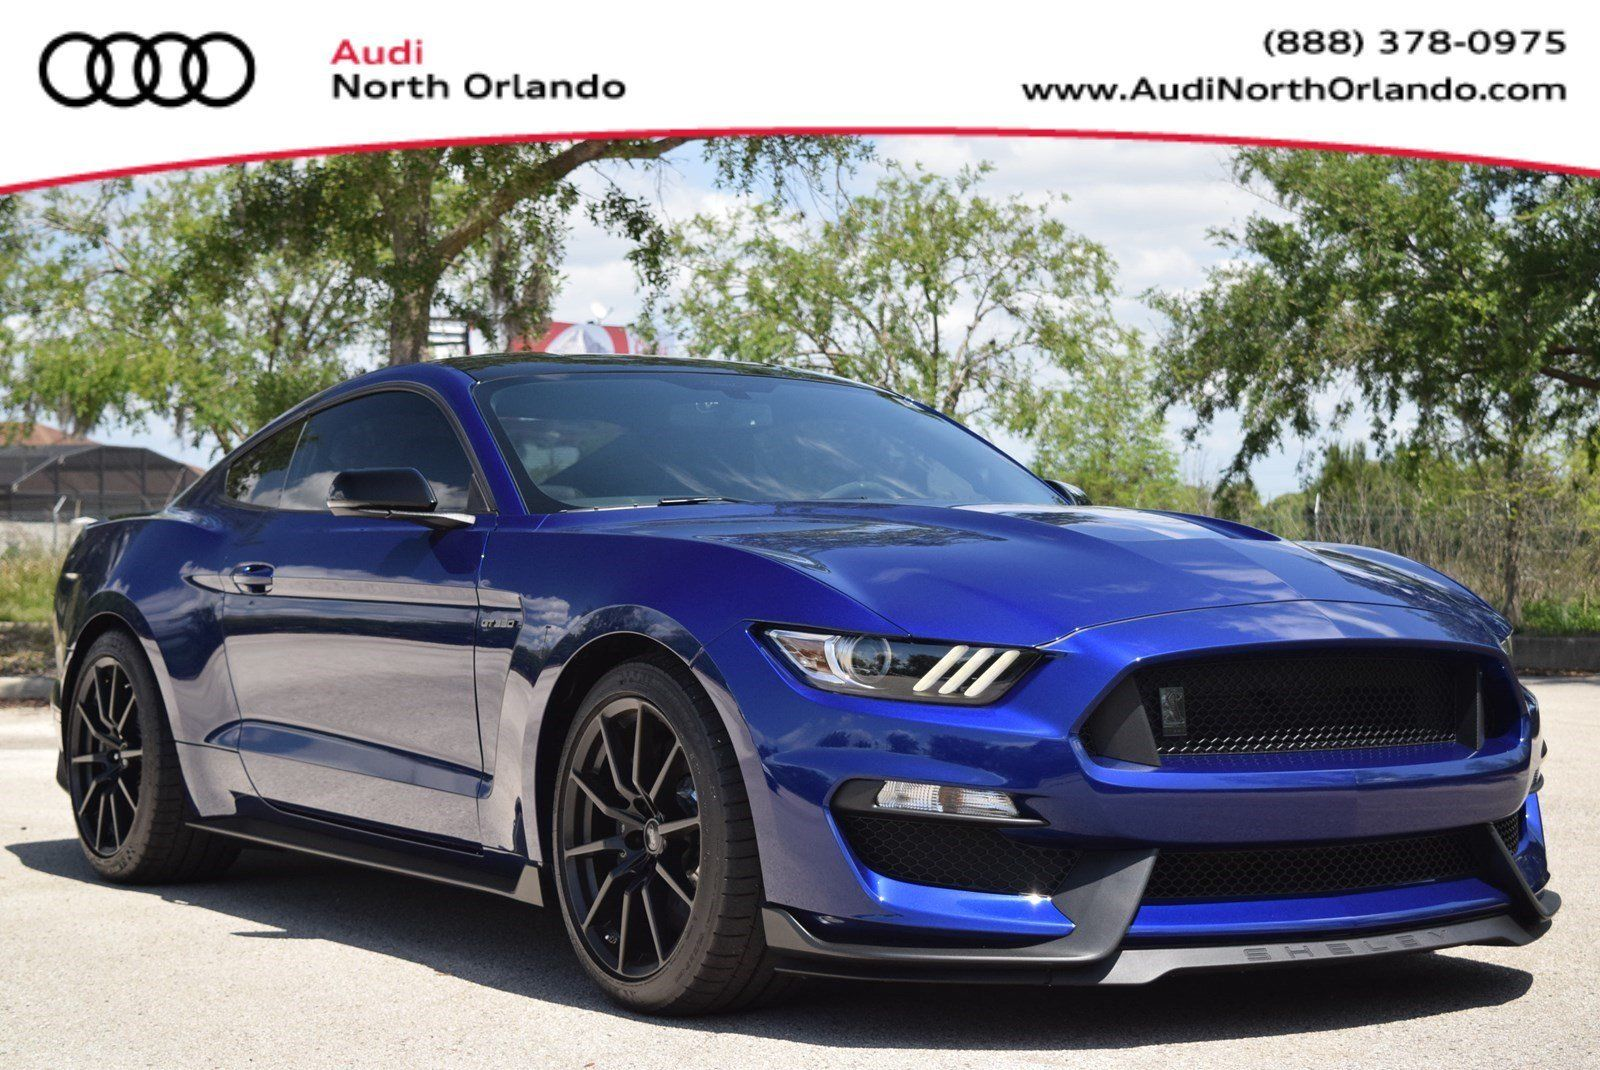 Awesome 2016 Ford Mustang Gt350 Shelby Tech Pkg Cooled Seats Black Roof Deep Impact Blue 2017 2018